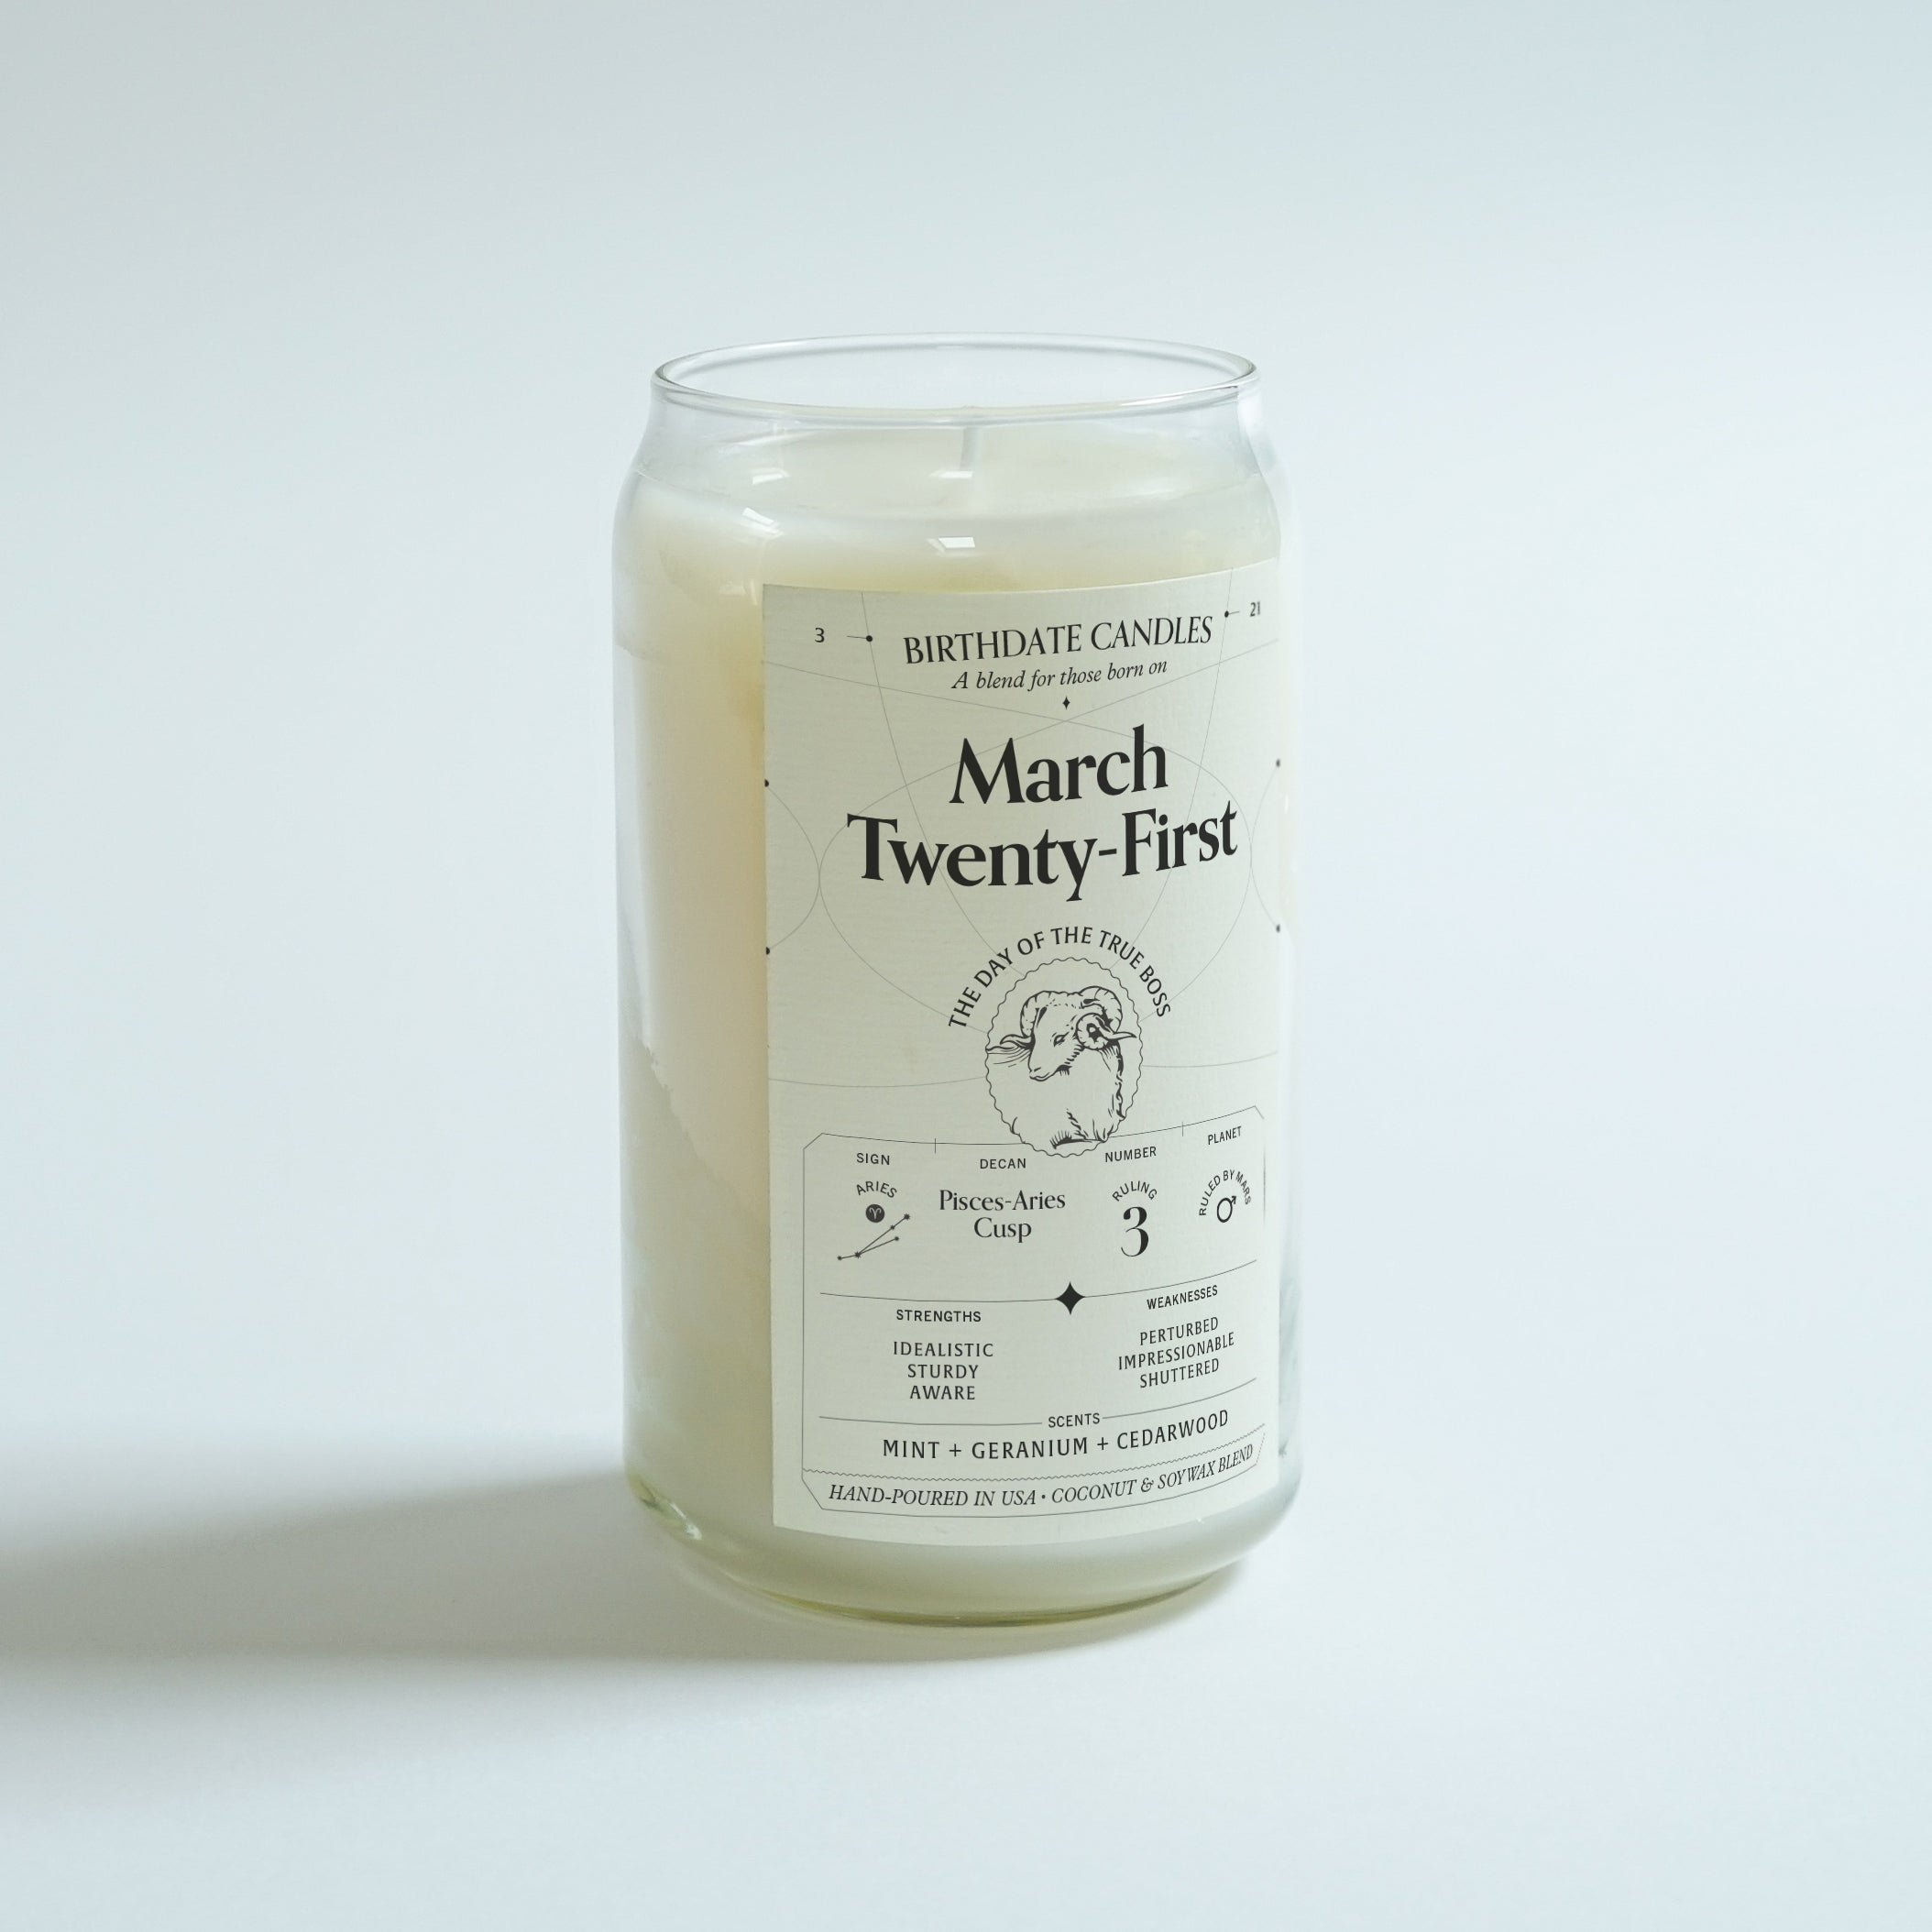 The March Twenty-First Candle